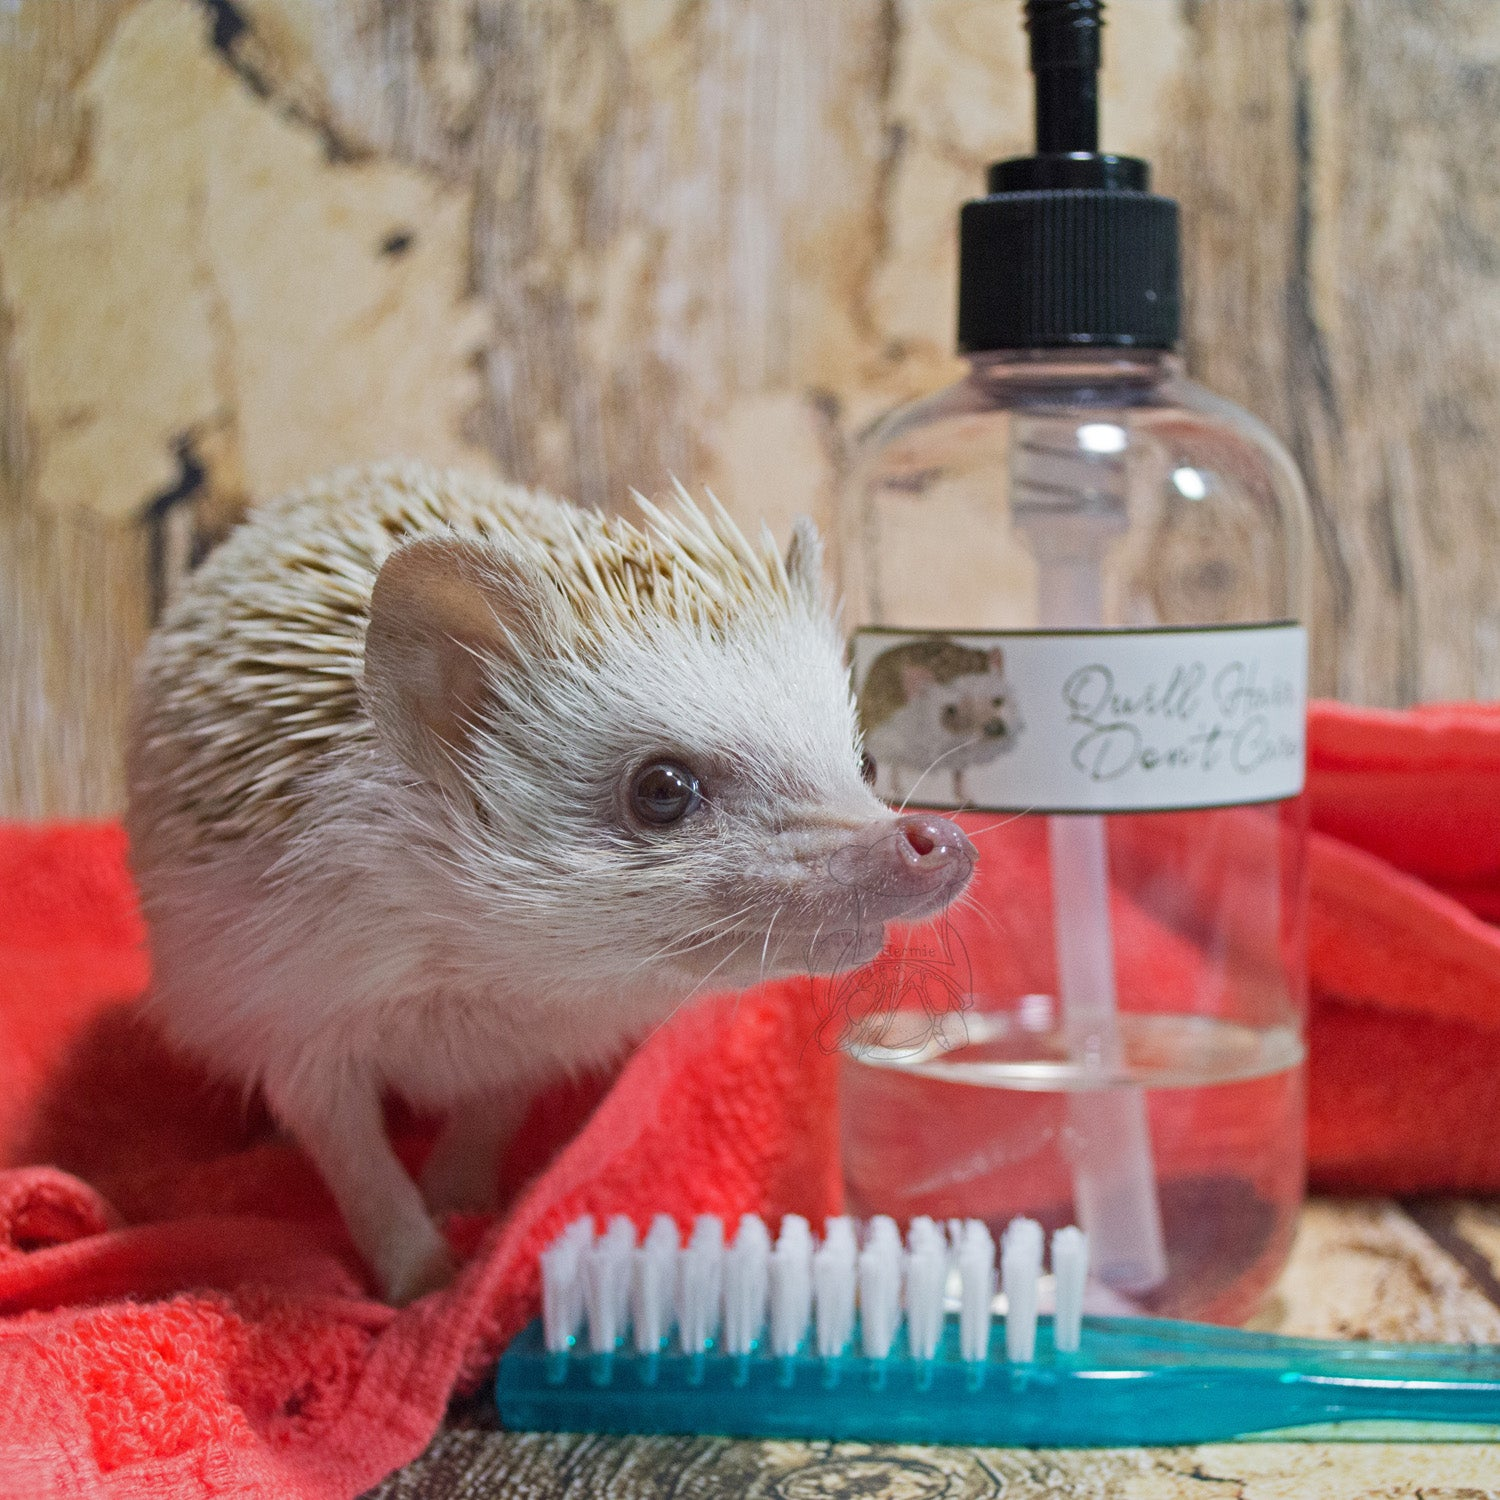 Hedgehog Bath Time Kit │ Hedgehog